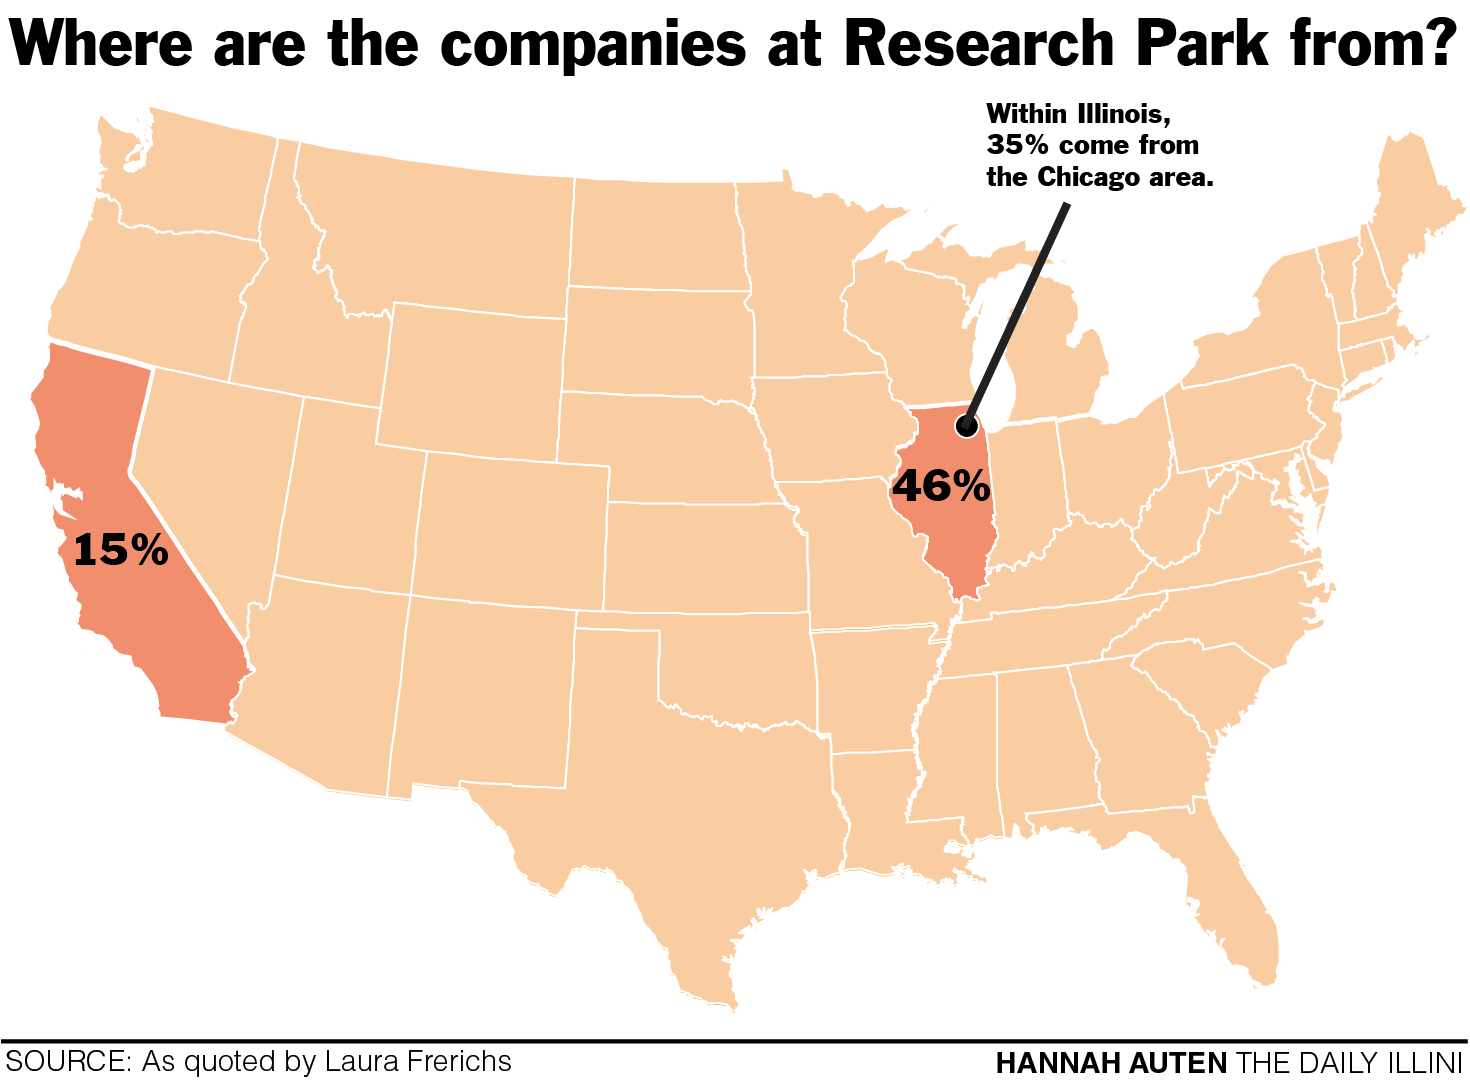 The+Research+Park%2C+established+at+the+University+in+2008%2C+draws+companies+from+across+the+country+because+of+its+resources%2C+recruiting+ability+and+student+workforce.%26nbsp%3B